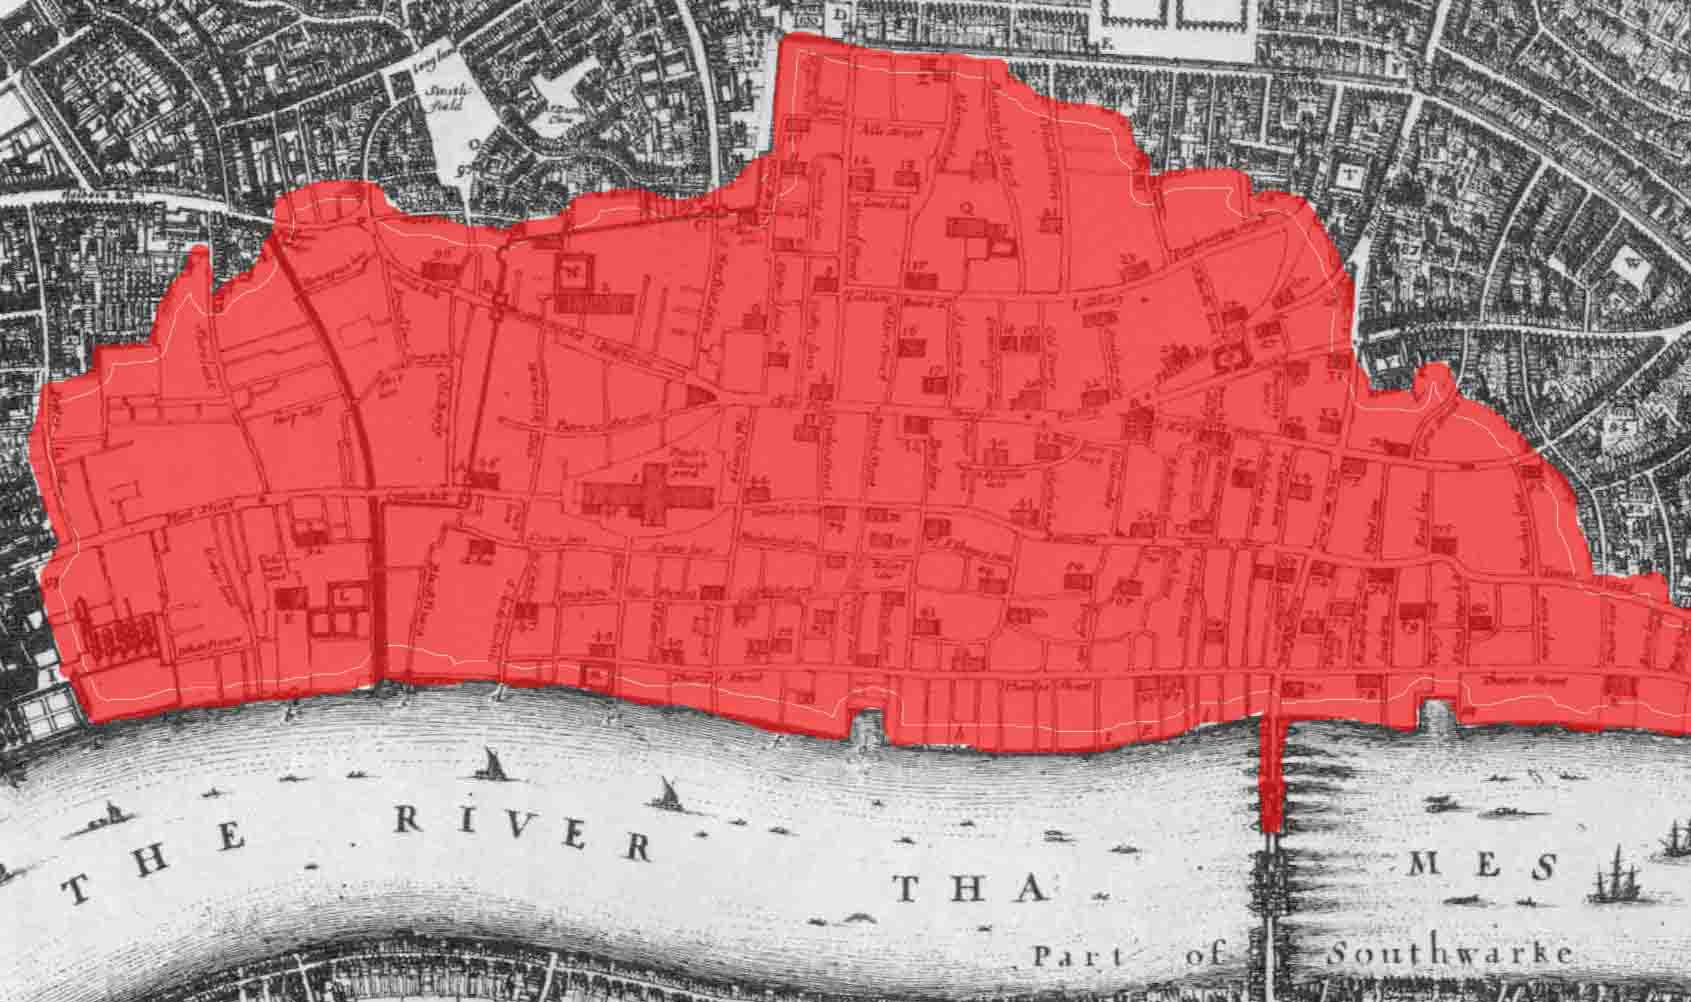 Great Fire Of London Map.Fire Of London 1666 London Bridge Where Thames Smooth Waters Glide